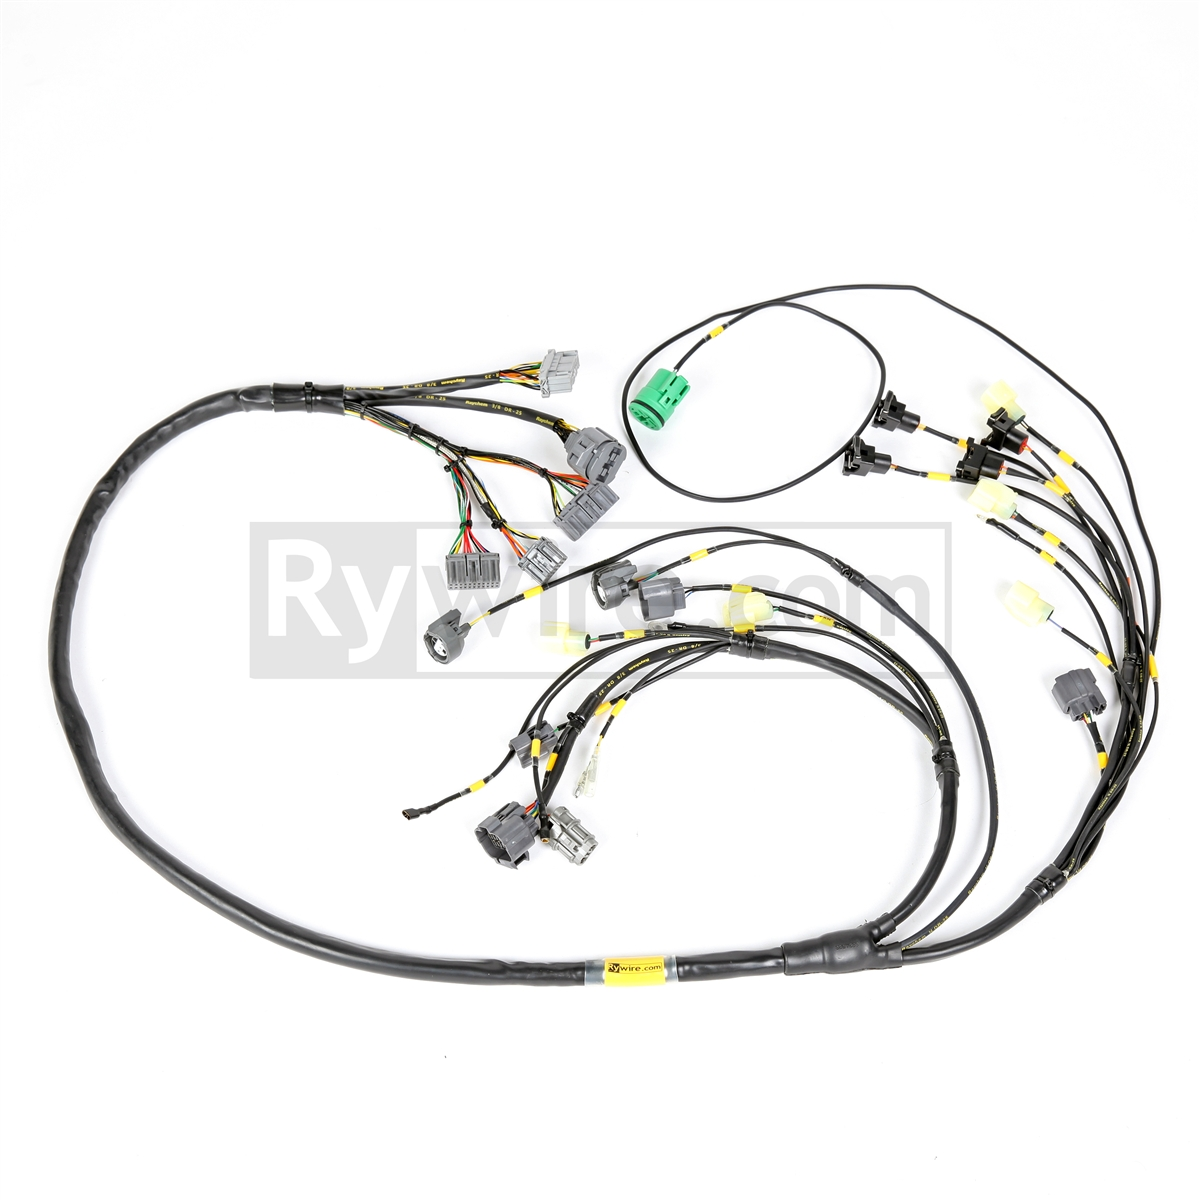 Rywire.com - Mil-Spec F-Series (F20b) & H-Series (H22) harness on land cruiser wiring harness, 4runner wiring harness, fj cruiser wiring harness, crown victoria wiring harness, grand marquis wiring harness, pt cruiser wiring harness, s2000 wiring harness, enclave wiring harness, camry wiring harness, vue wiring harness, mr2 wiring harness, tundra wiring harness, tahoe wiring harness, gto wiring harness,